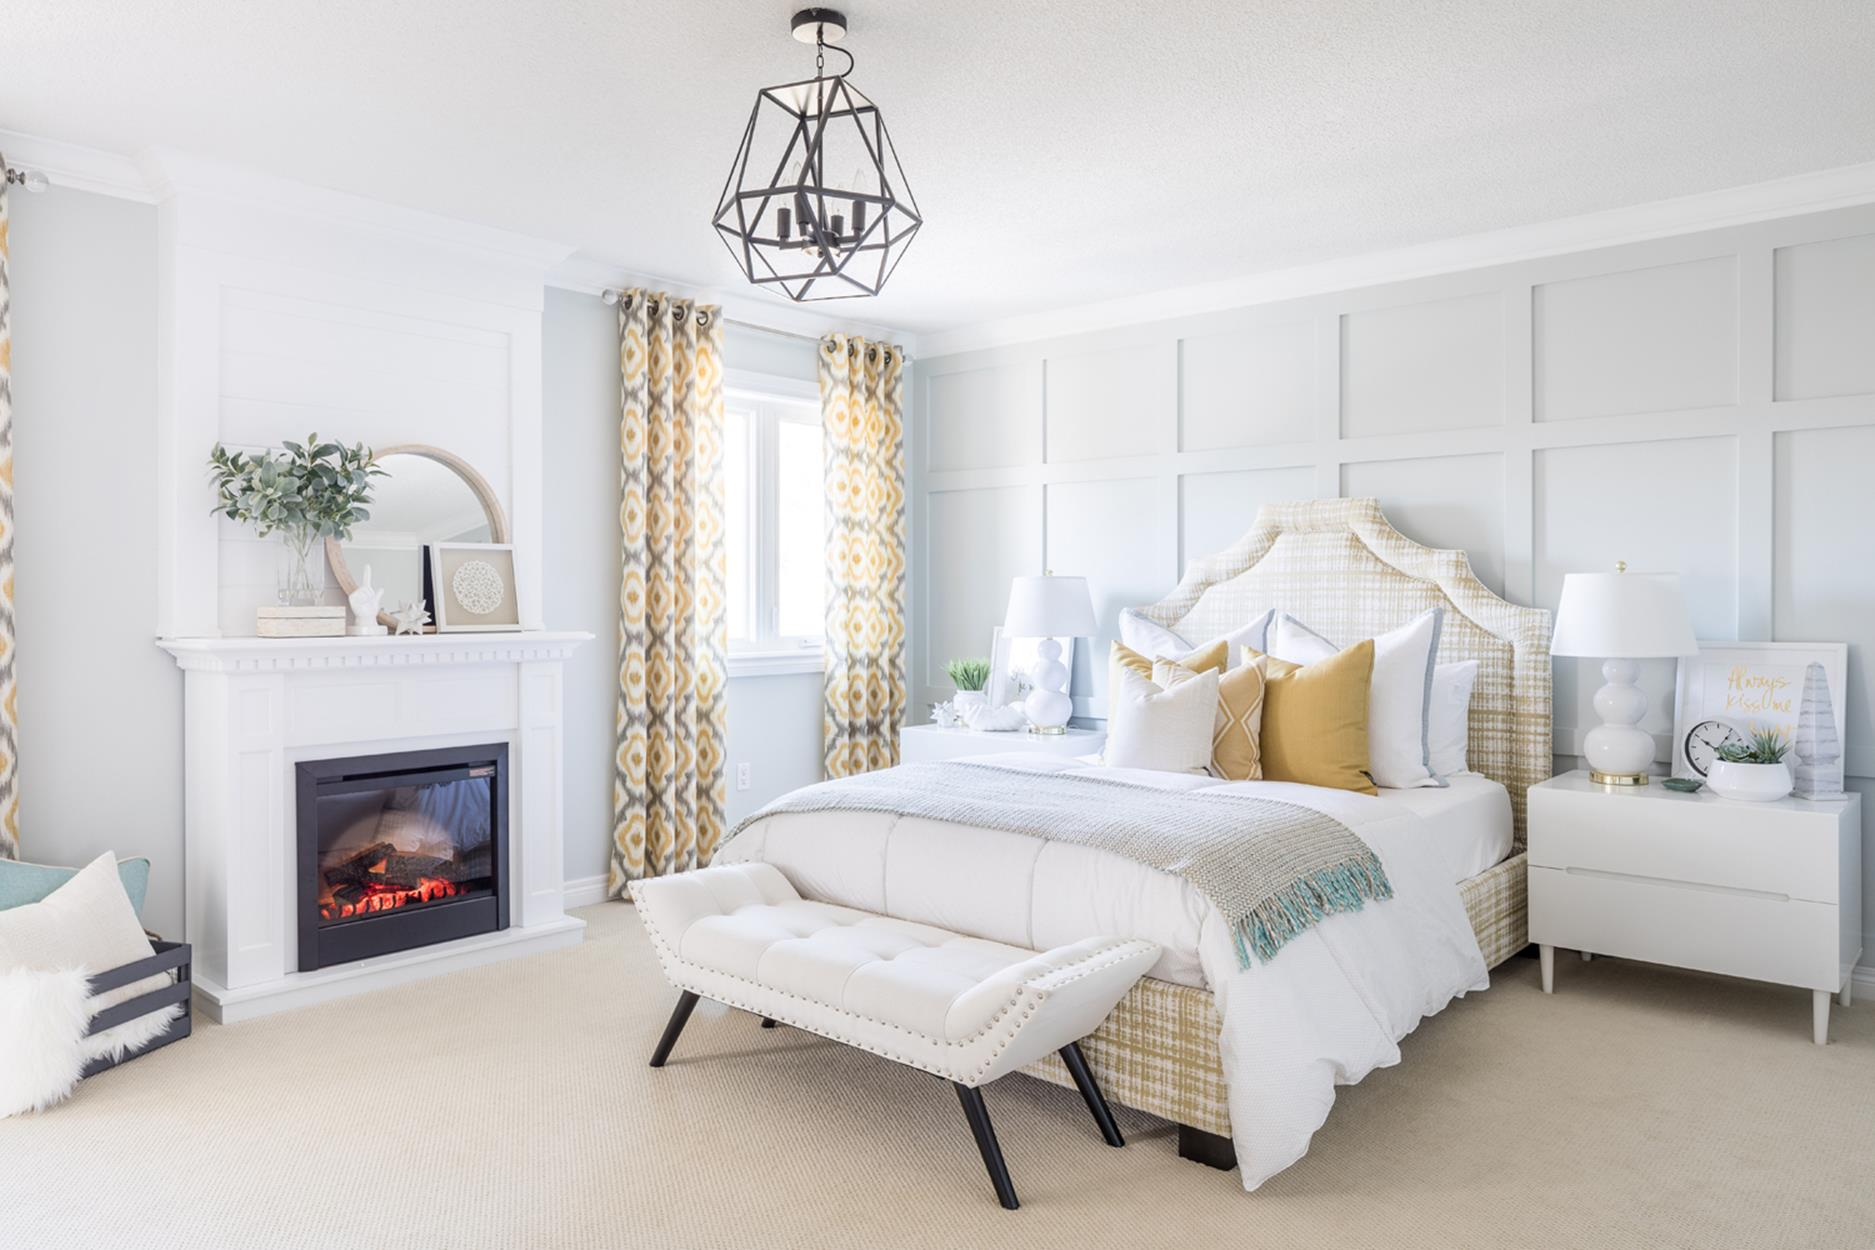 Bedroom Decorating Ideas for Spring 37